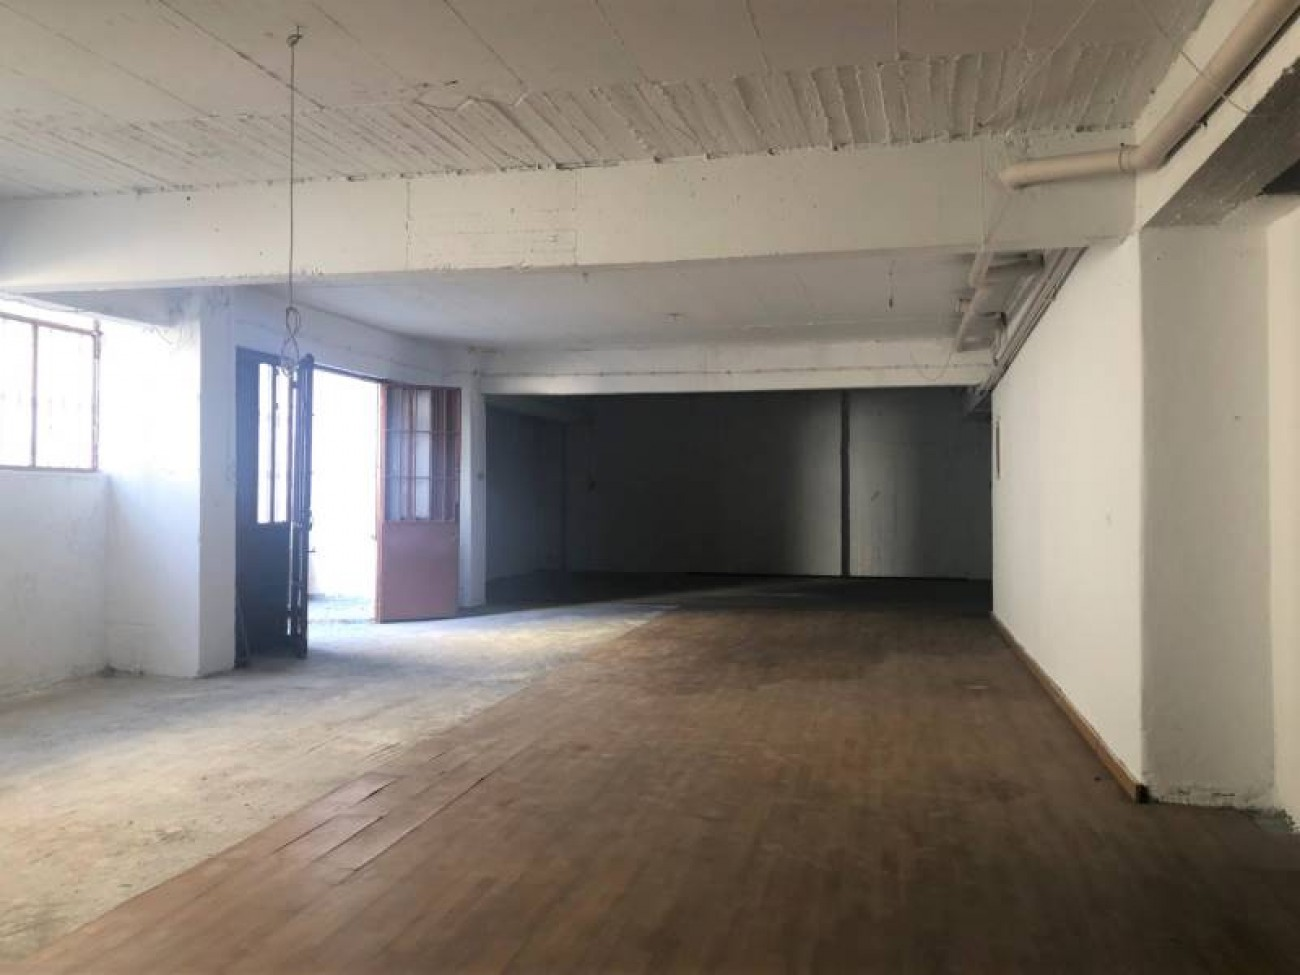 for Rent in Central & Western Suburbs, Prefecture of Attica